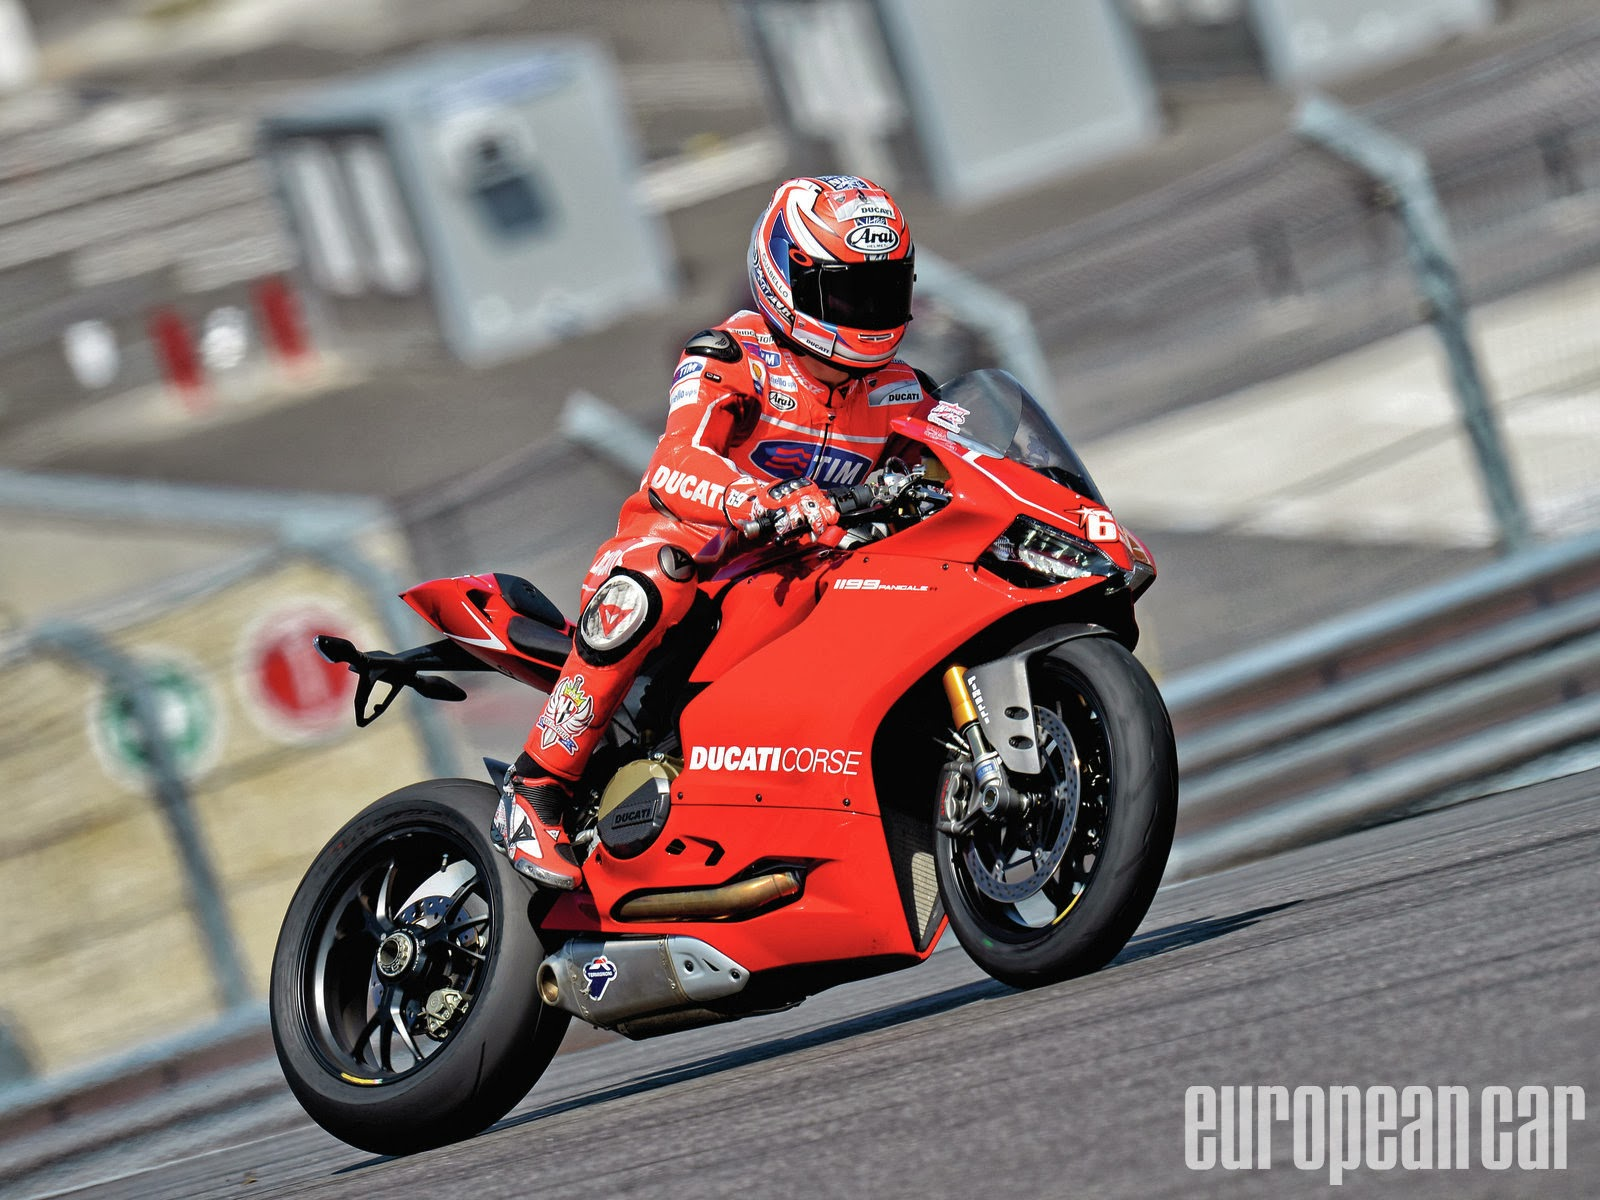 ducati superbike 1199 panigale r 2014 owner u0026 39 s manual